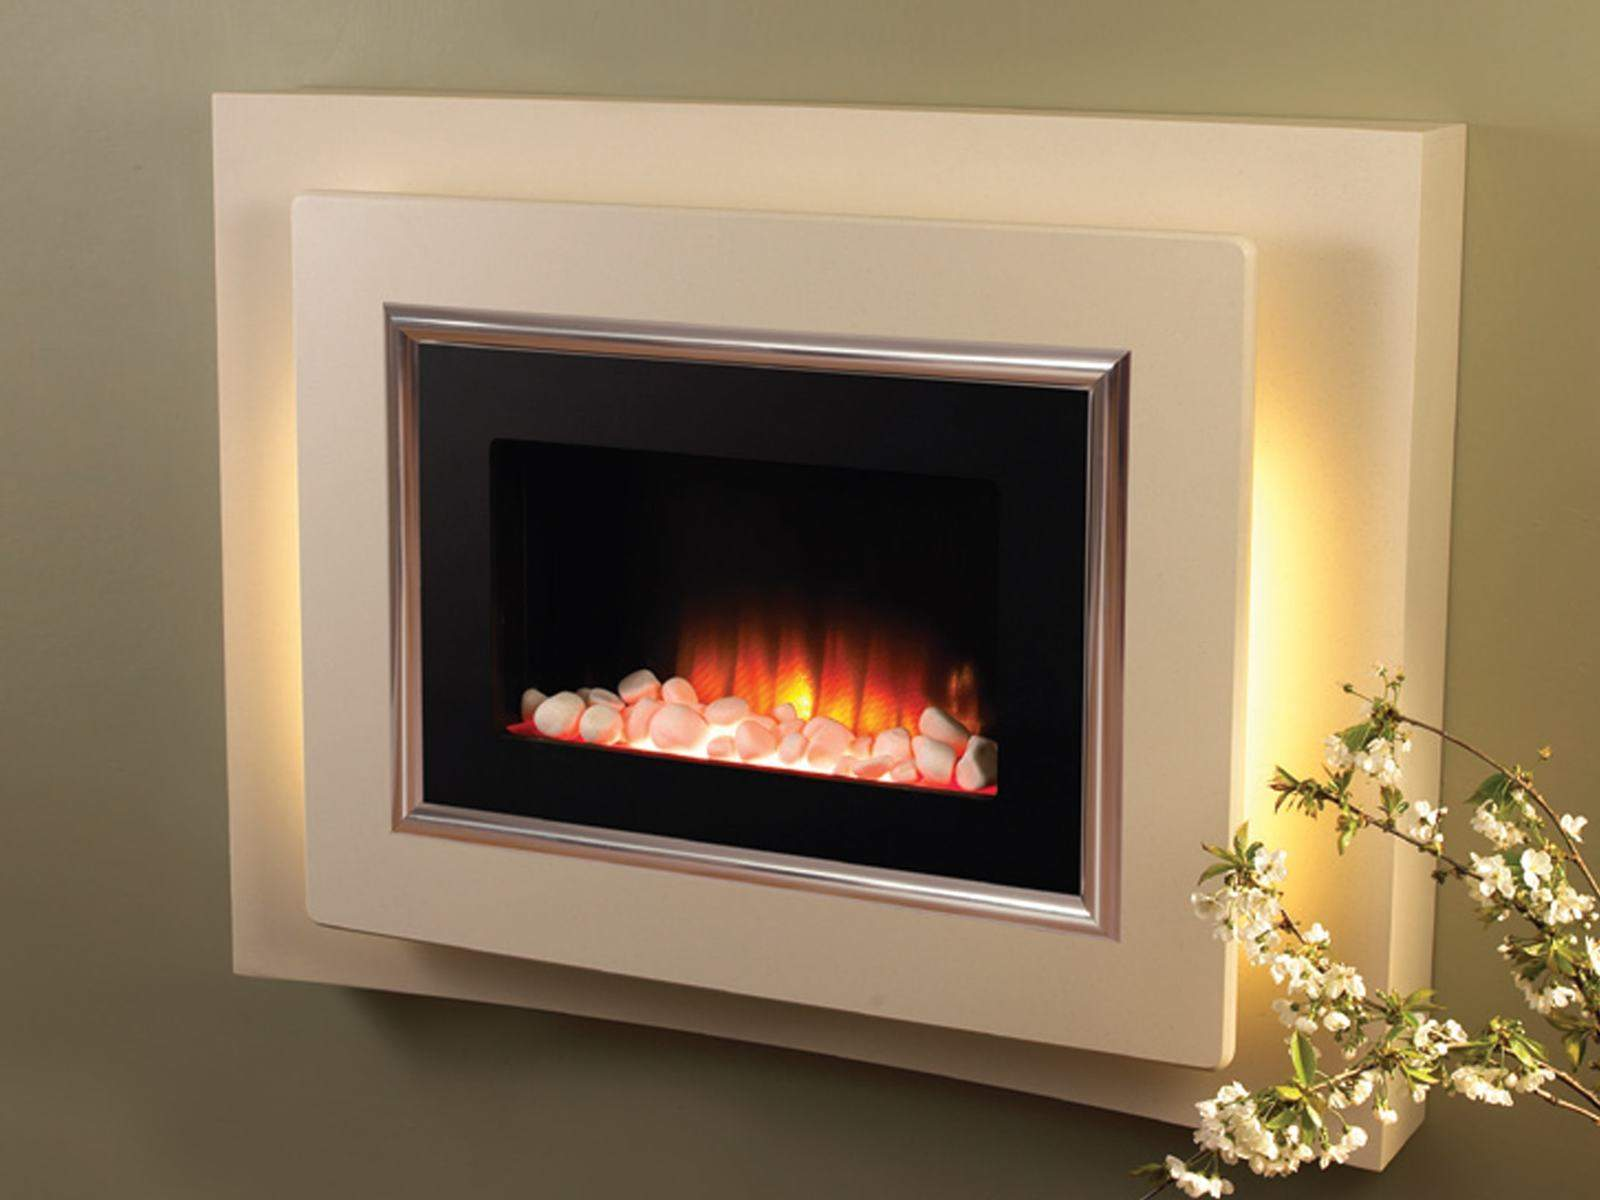 Home Design Ideas Pictures: Wall Mounted Electric Fires